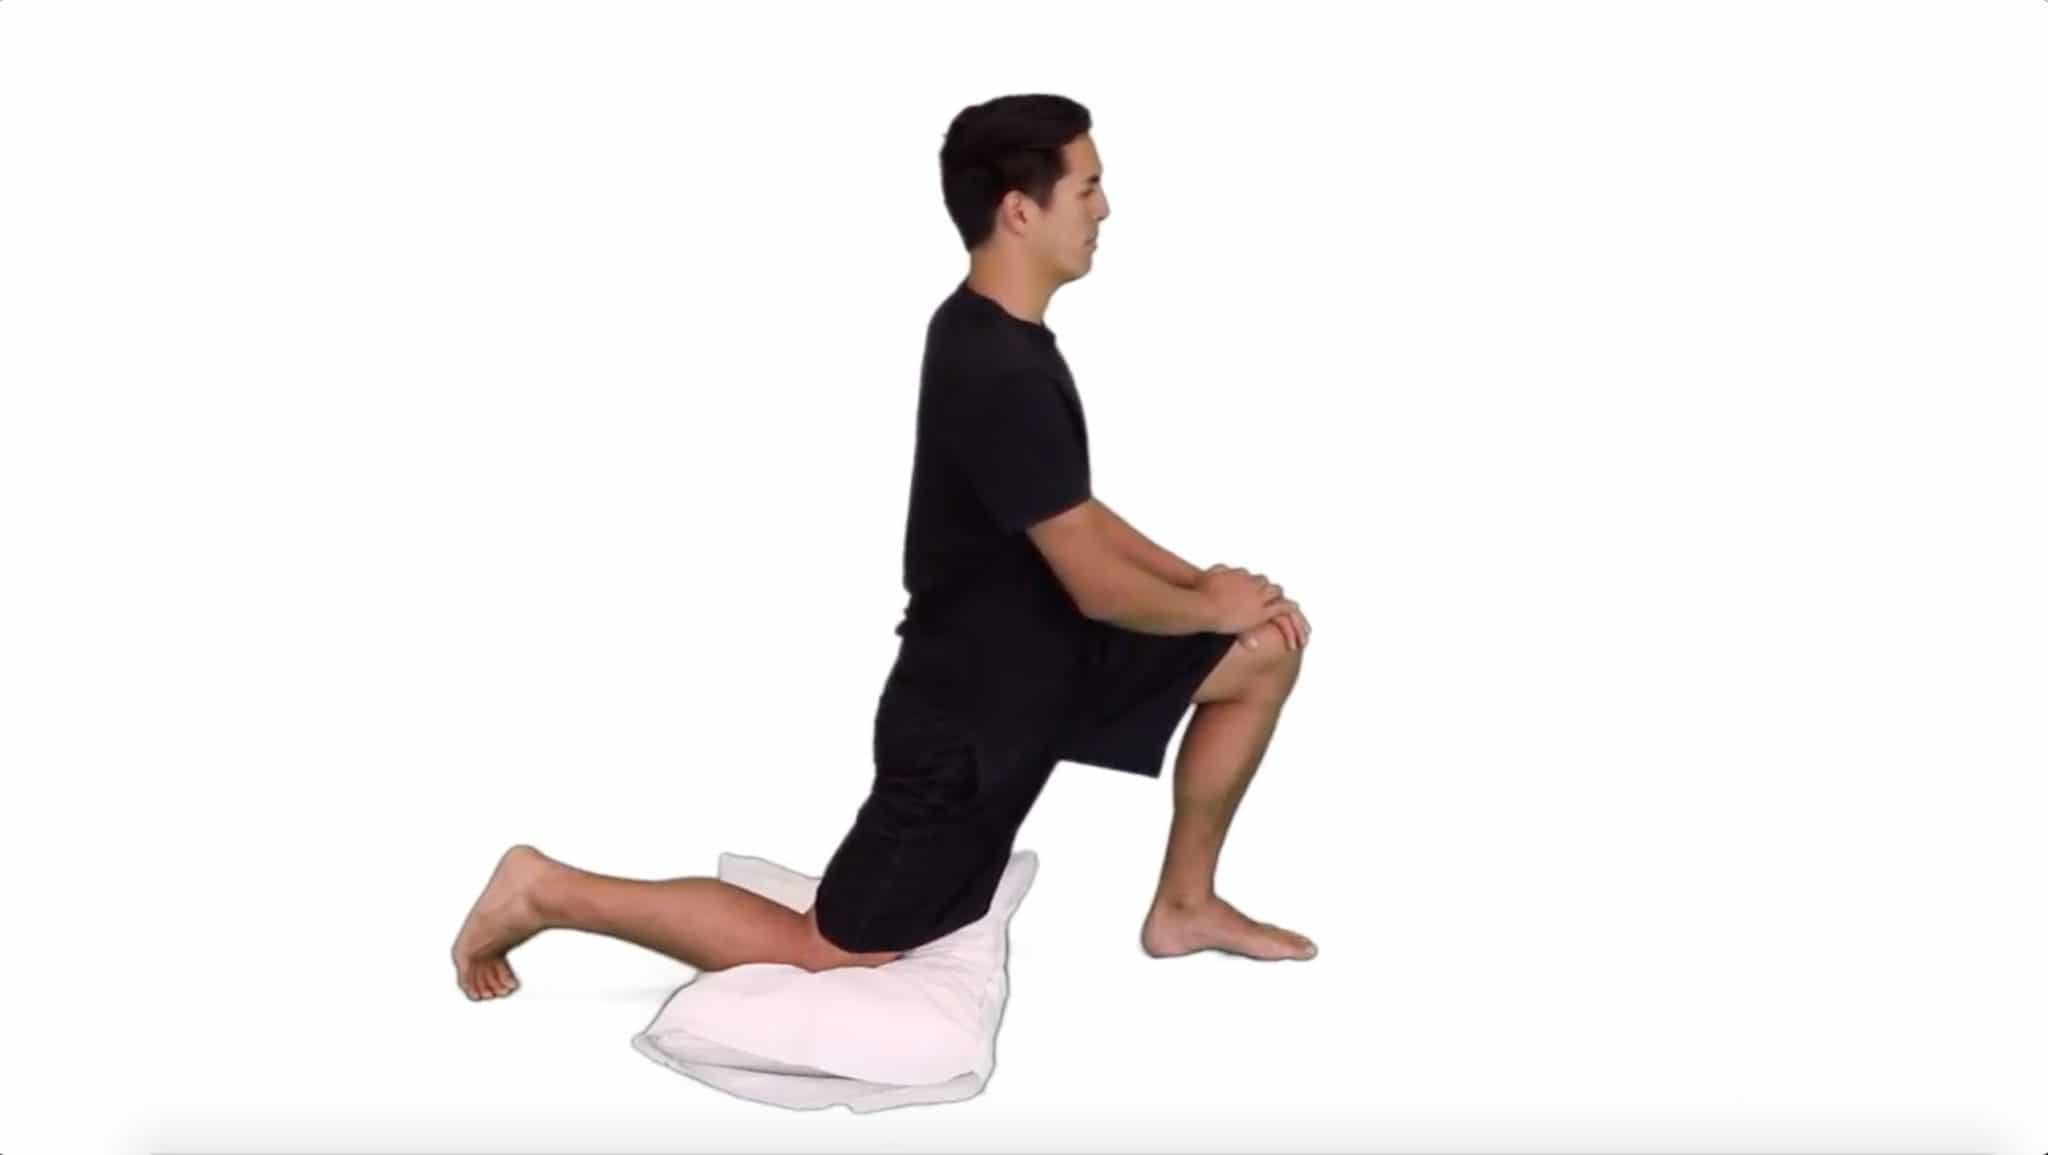 Hip Flexor Stretches For Seniors - Great Exercises For Hip Pain In Elderly